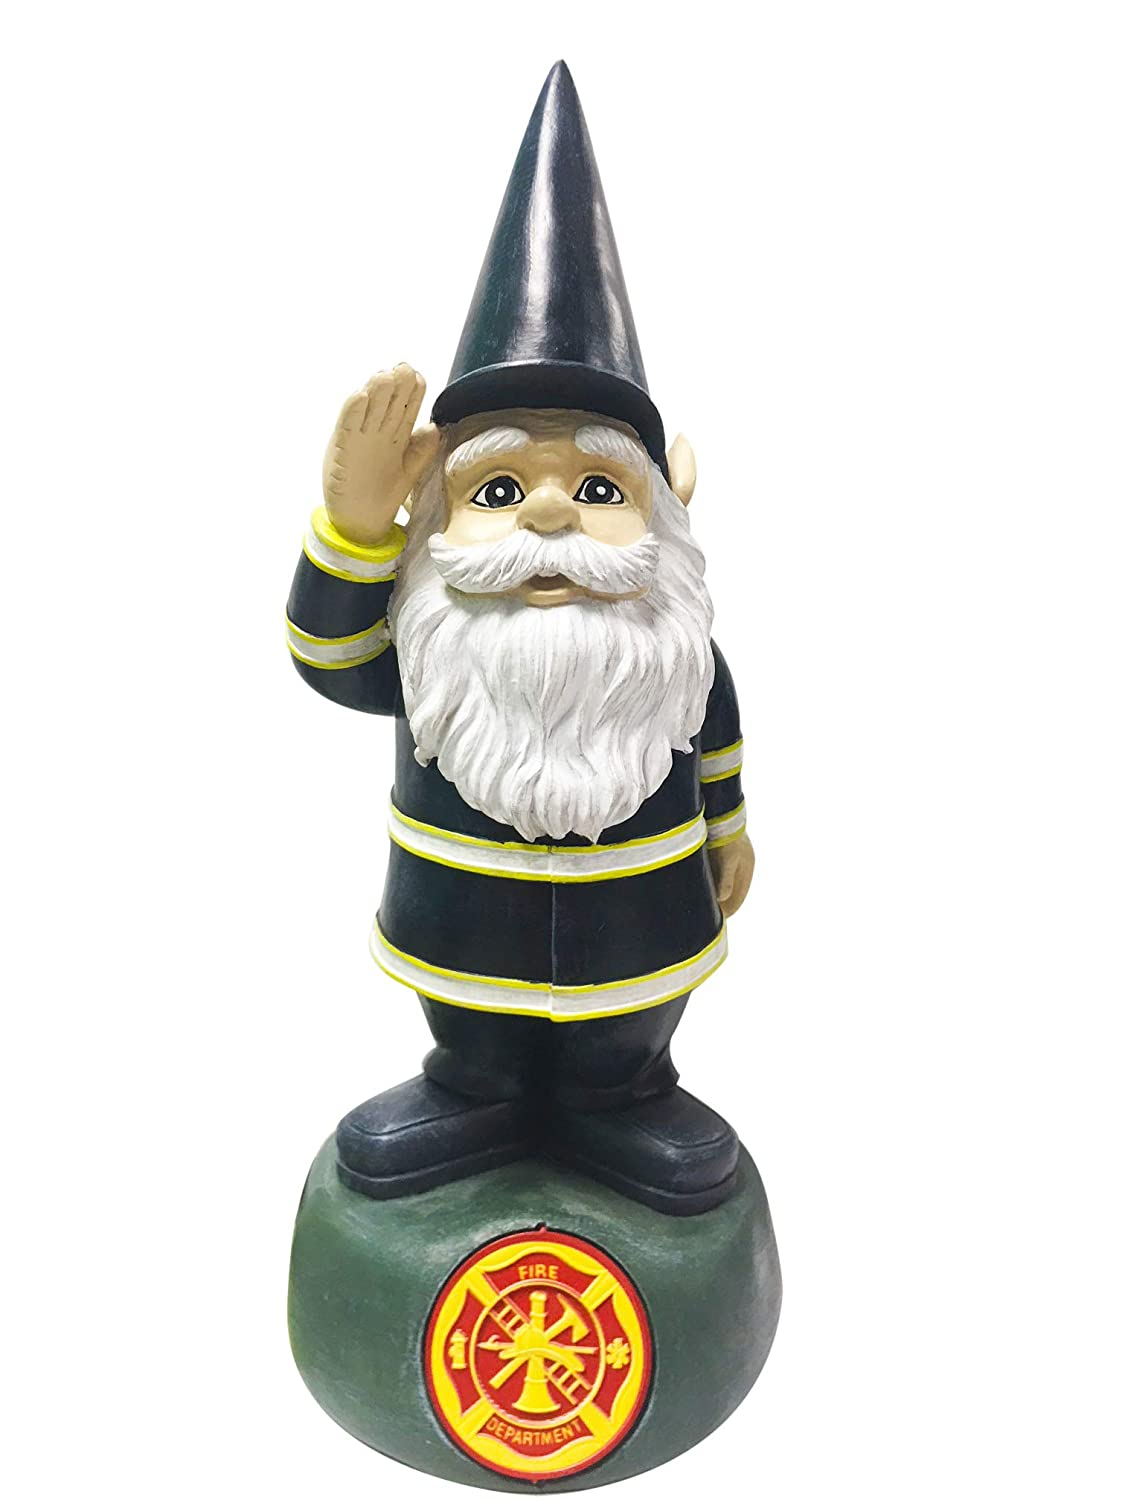 Red Carpet Studios 35165 Outdoor Garden Gnome, Fire Department